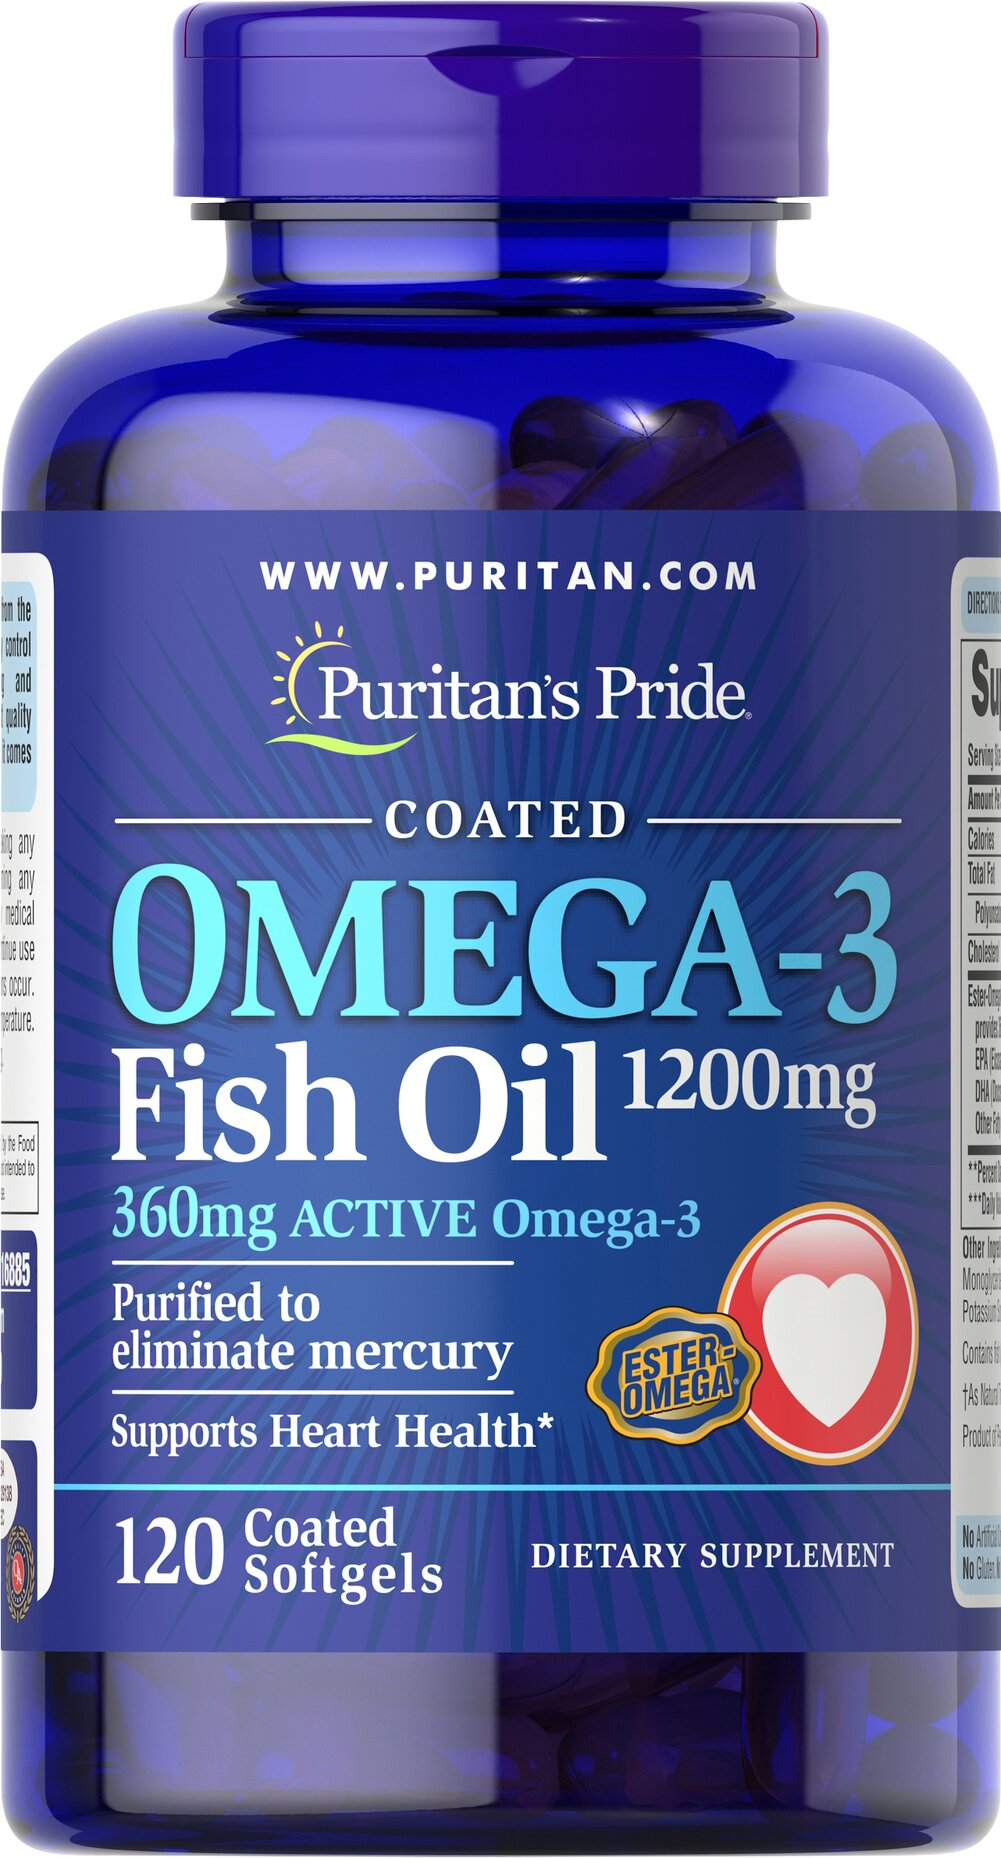 "Omega-3 Fish Oil Coated 1200 mg (360 mg Active Omega-3) <p><span></span>Provides 360mg of Total Omega-3 Fatty Acids.</p><p><span></span>Supports heart health.**</p><p><span></span>Purified to eliminate mercury.</p><p>Our Ester-Omega® Omega-3 Fish Oil provides 360mg of active Omega-3, consisting of EPA, DHA and other fatty acids. EPA & DHA fatty acids are ""good"" fats that can help to balance the ""bad f"